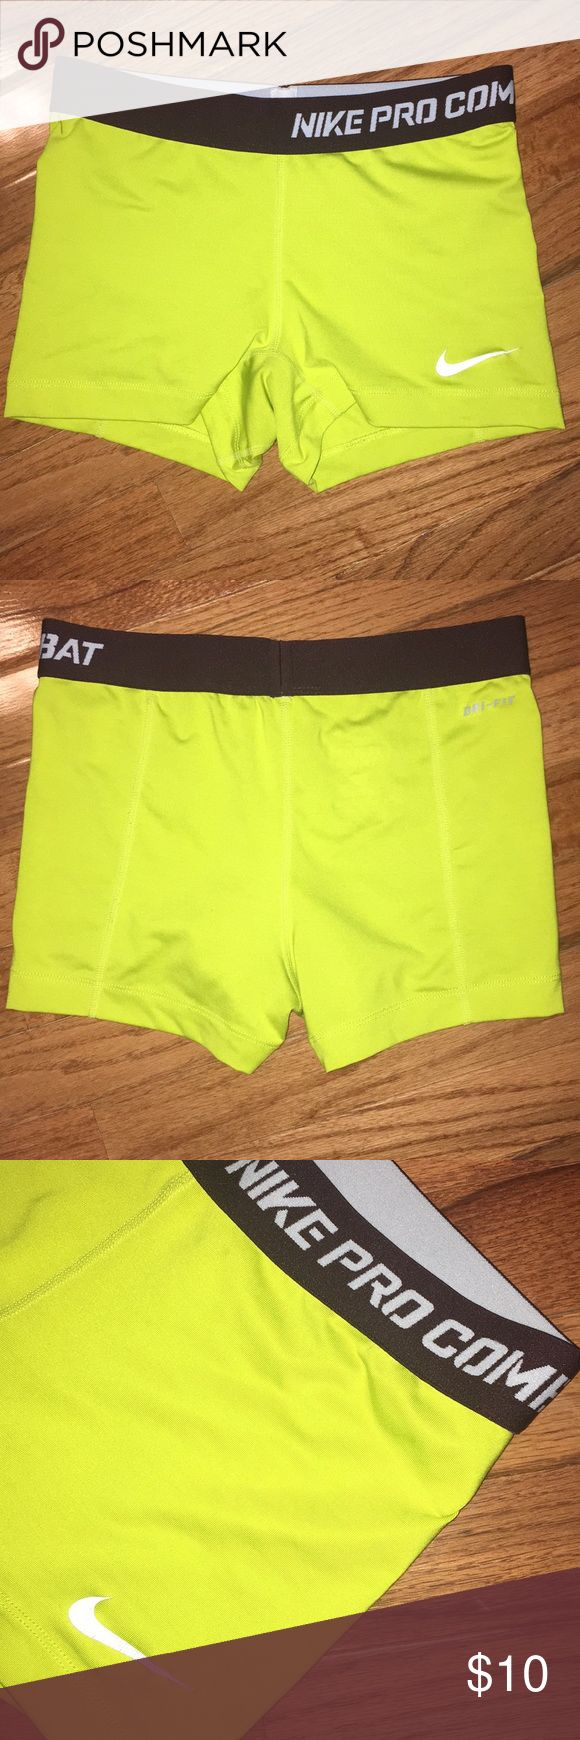 Nike Pro shorts Nike Pro Combat Dri-fit compression shorts Neon green. Good condition. Smoke free home. Nike symbol slightly worn as pictured Make an offer! Nike Shorts